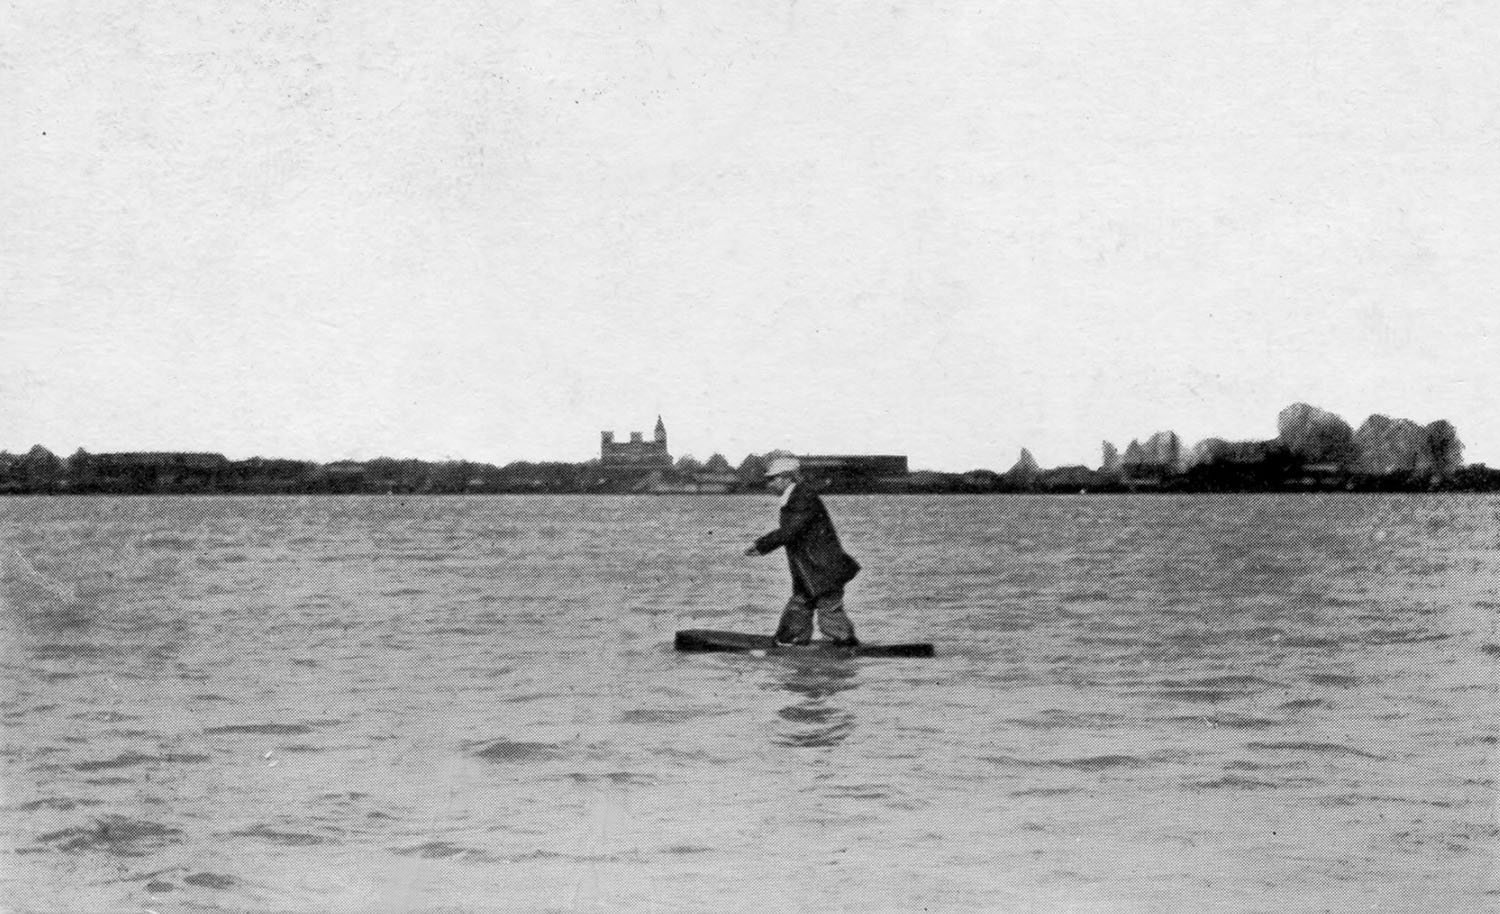 Charles Oldrieve walking on the Mississippi River at Arkansas City, Ark.